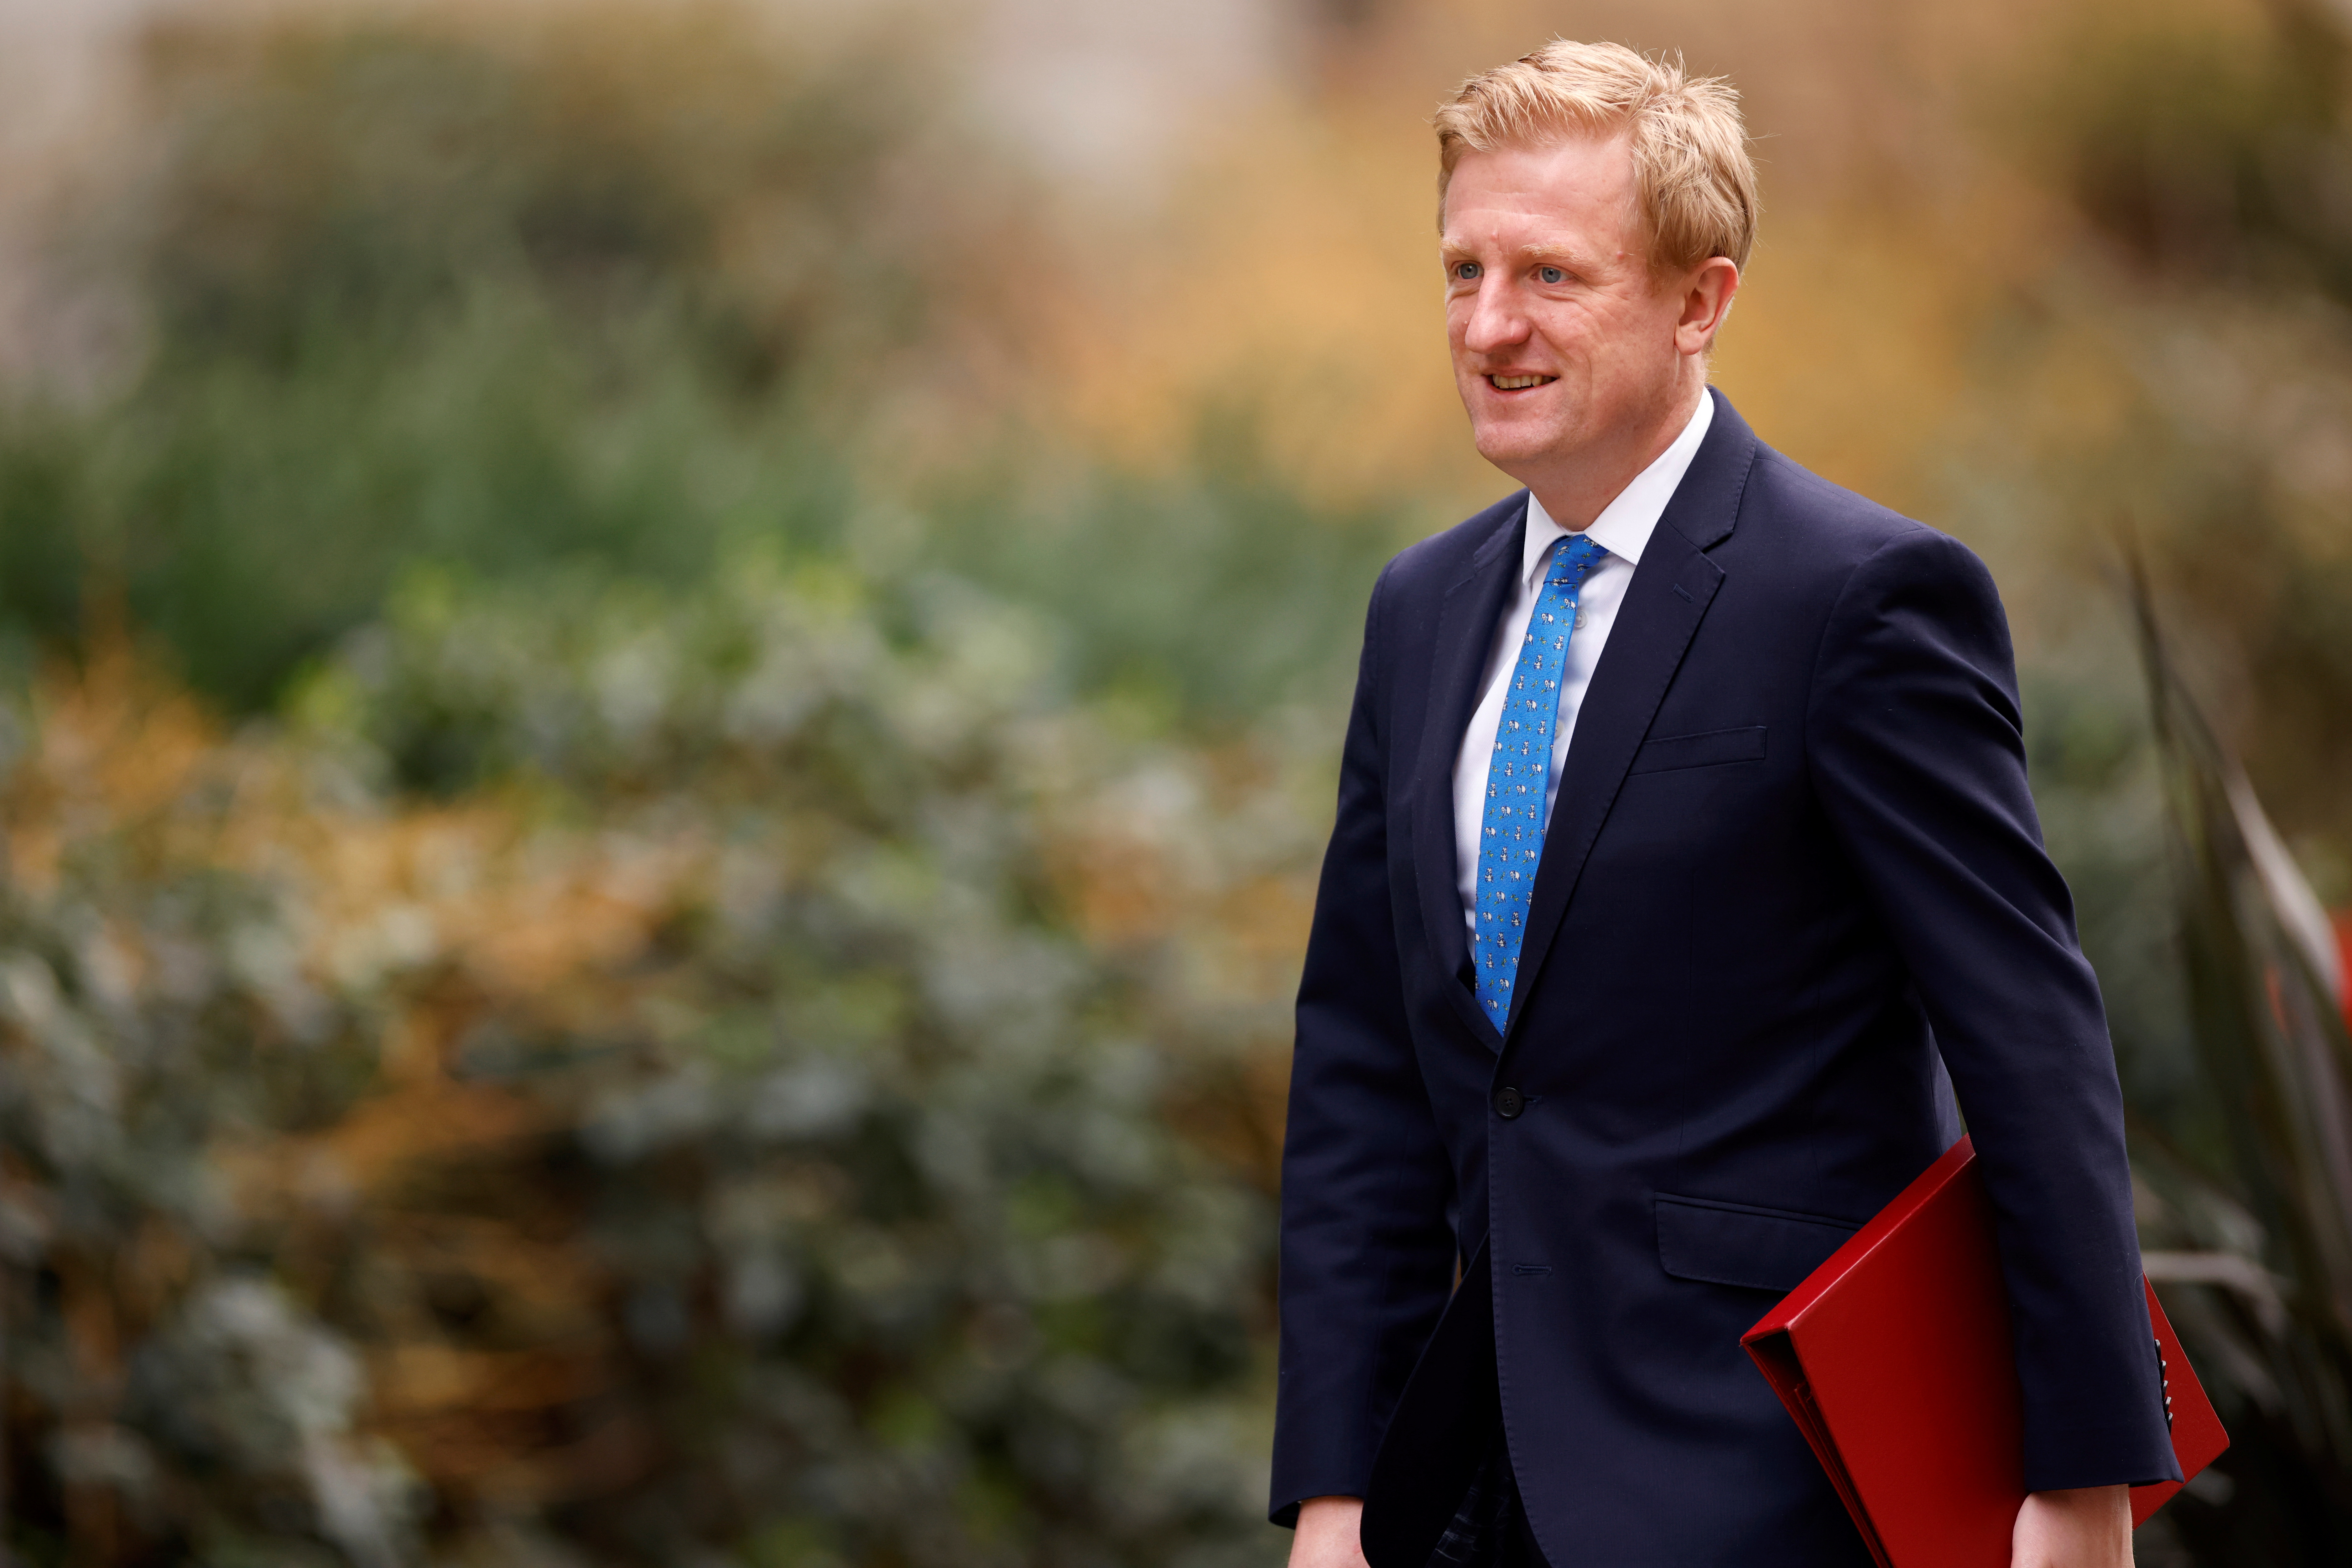 Britain's Secretary of State for Digital, Culture, Media and Sport Oliver Dowden walks outside Downing Street in London, Britain, February 24, 2021. REUTERS/John Sibley